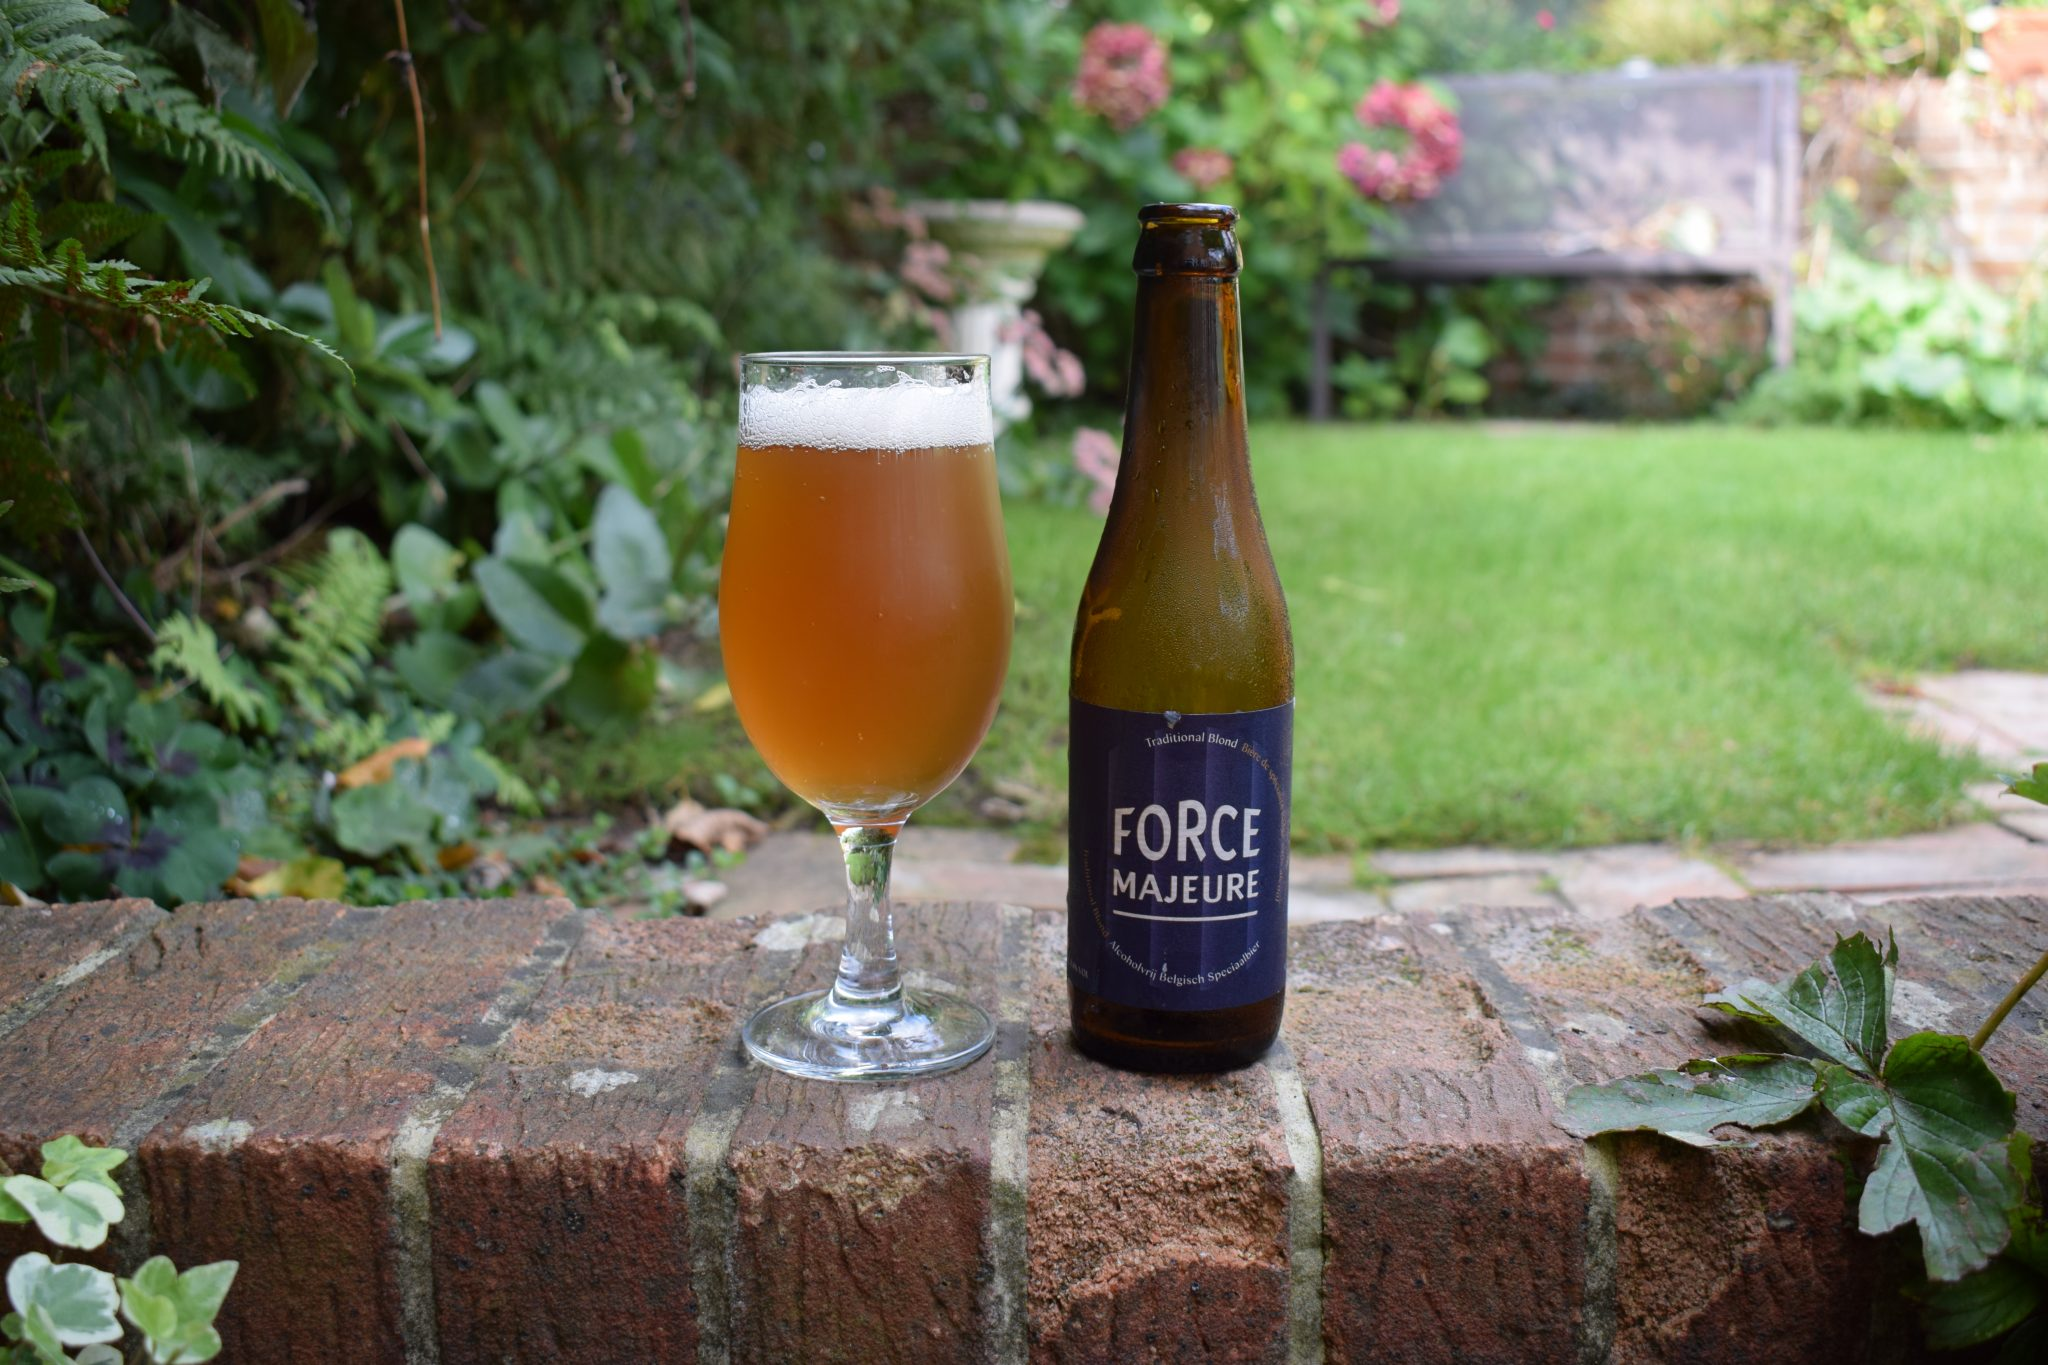 """Traditional Blond"" (0.4%) by Force Majeure"